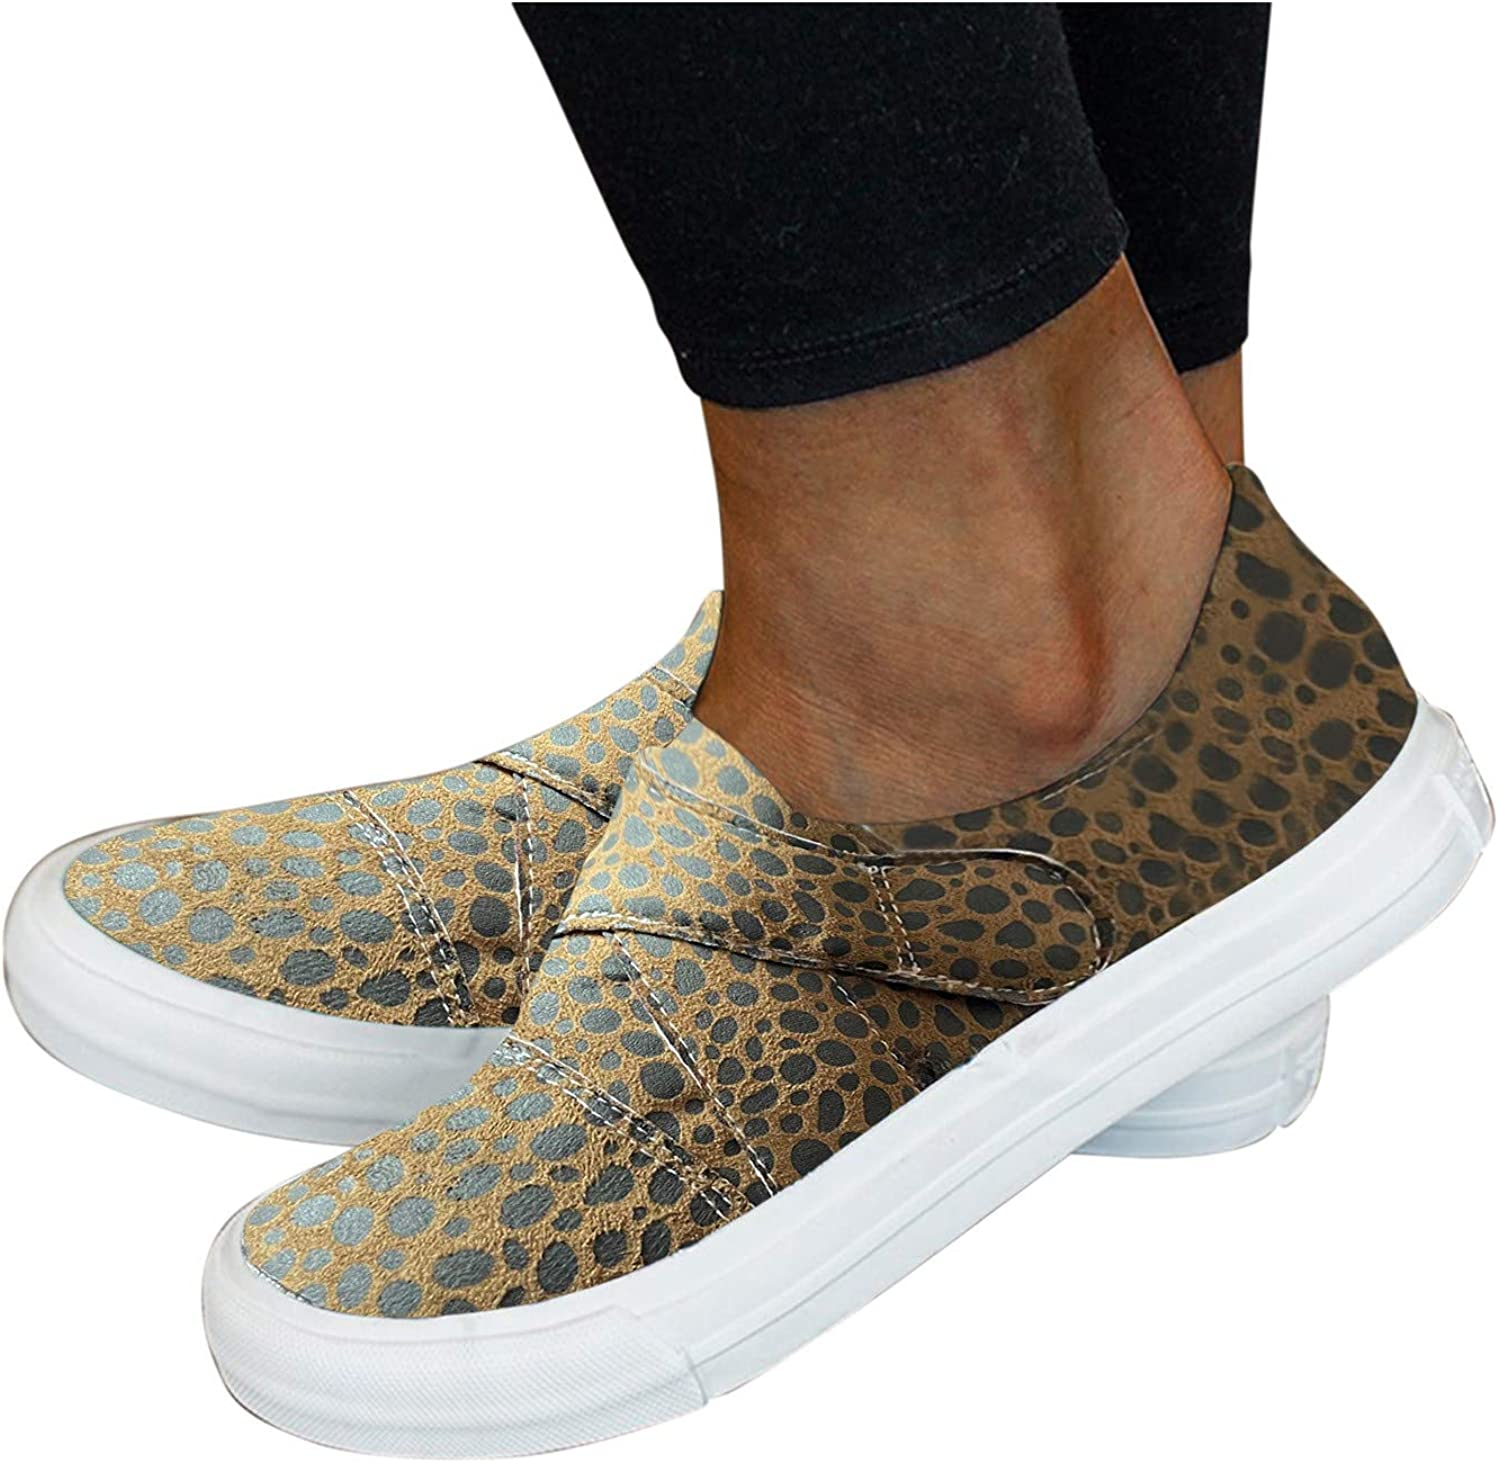 Womens Walking Shoes Slip On Sneakers,Canvas Shoes Women's Casual Round Toe Sport Shoes Hollow Flat Running Shoes Loafers